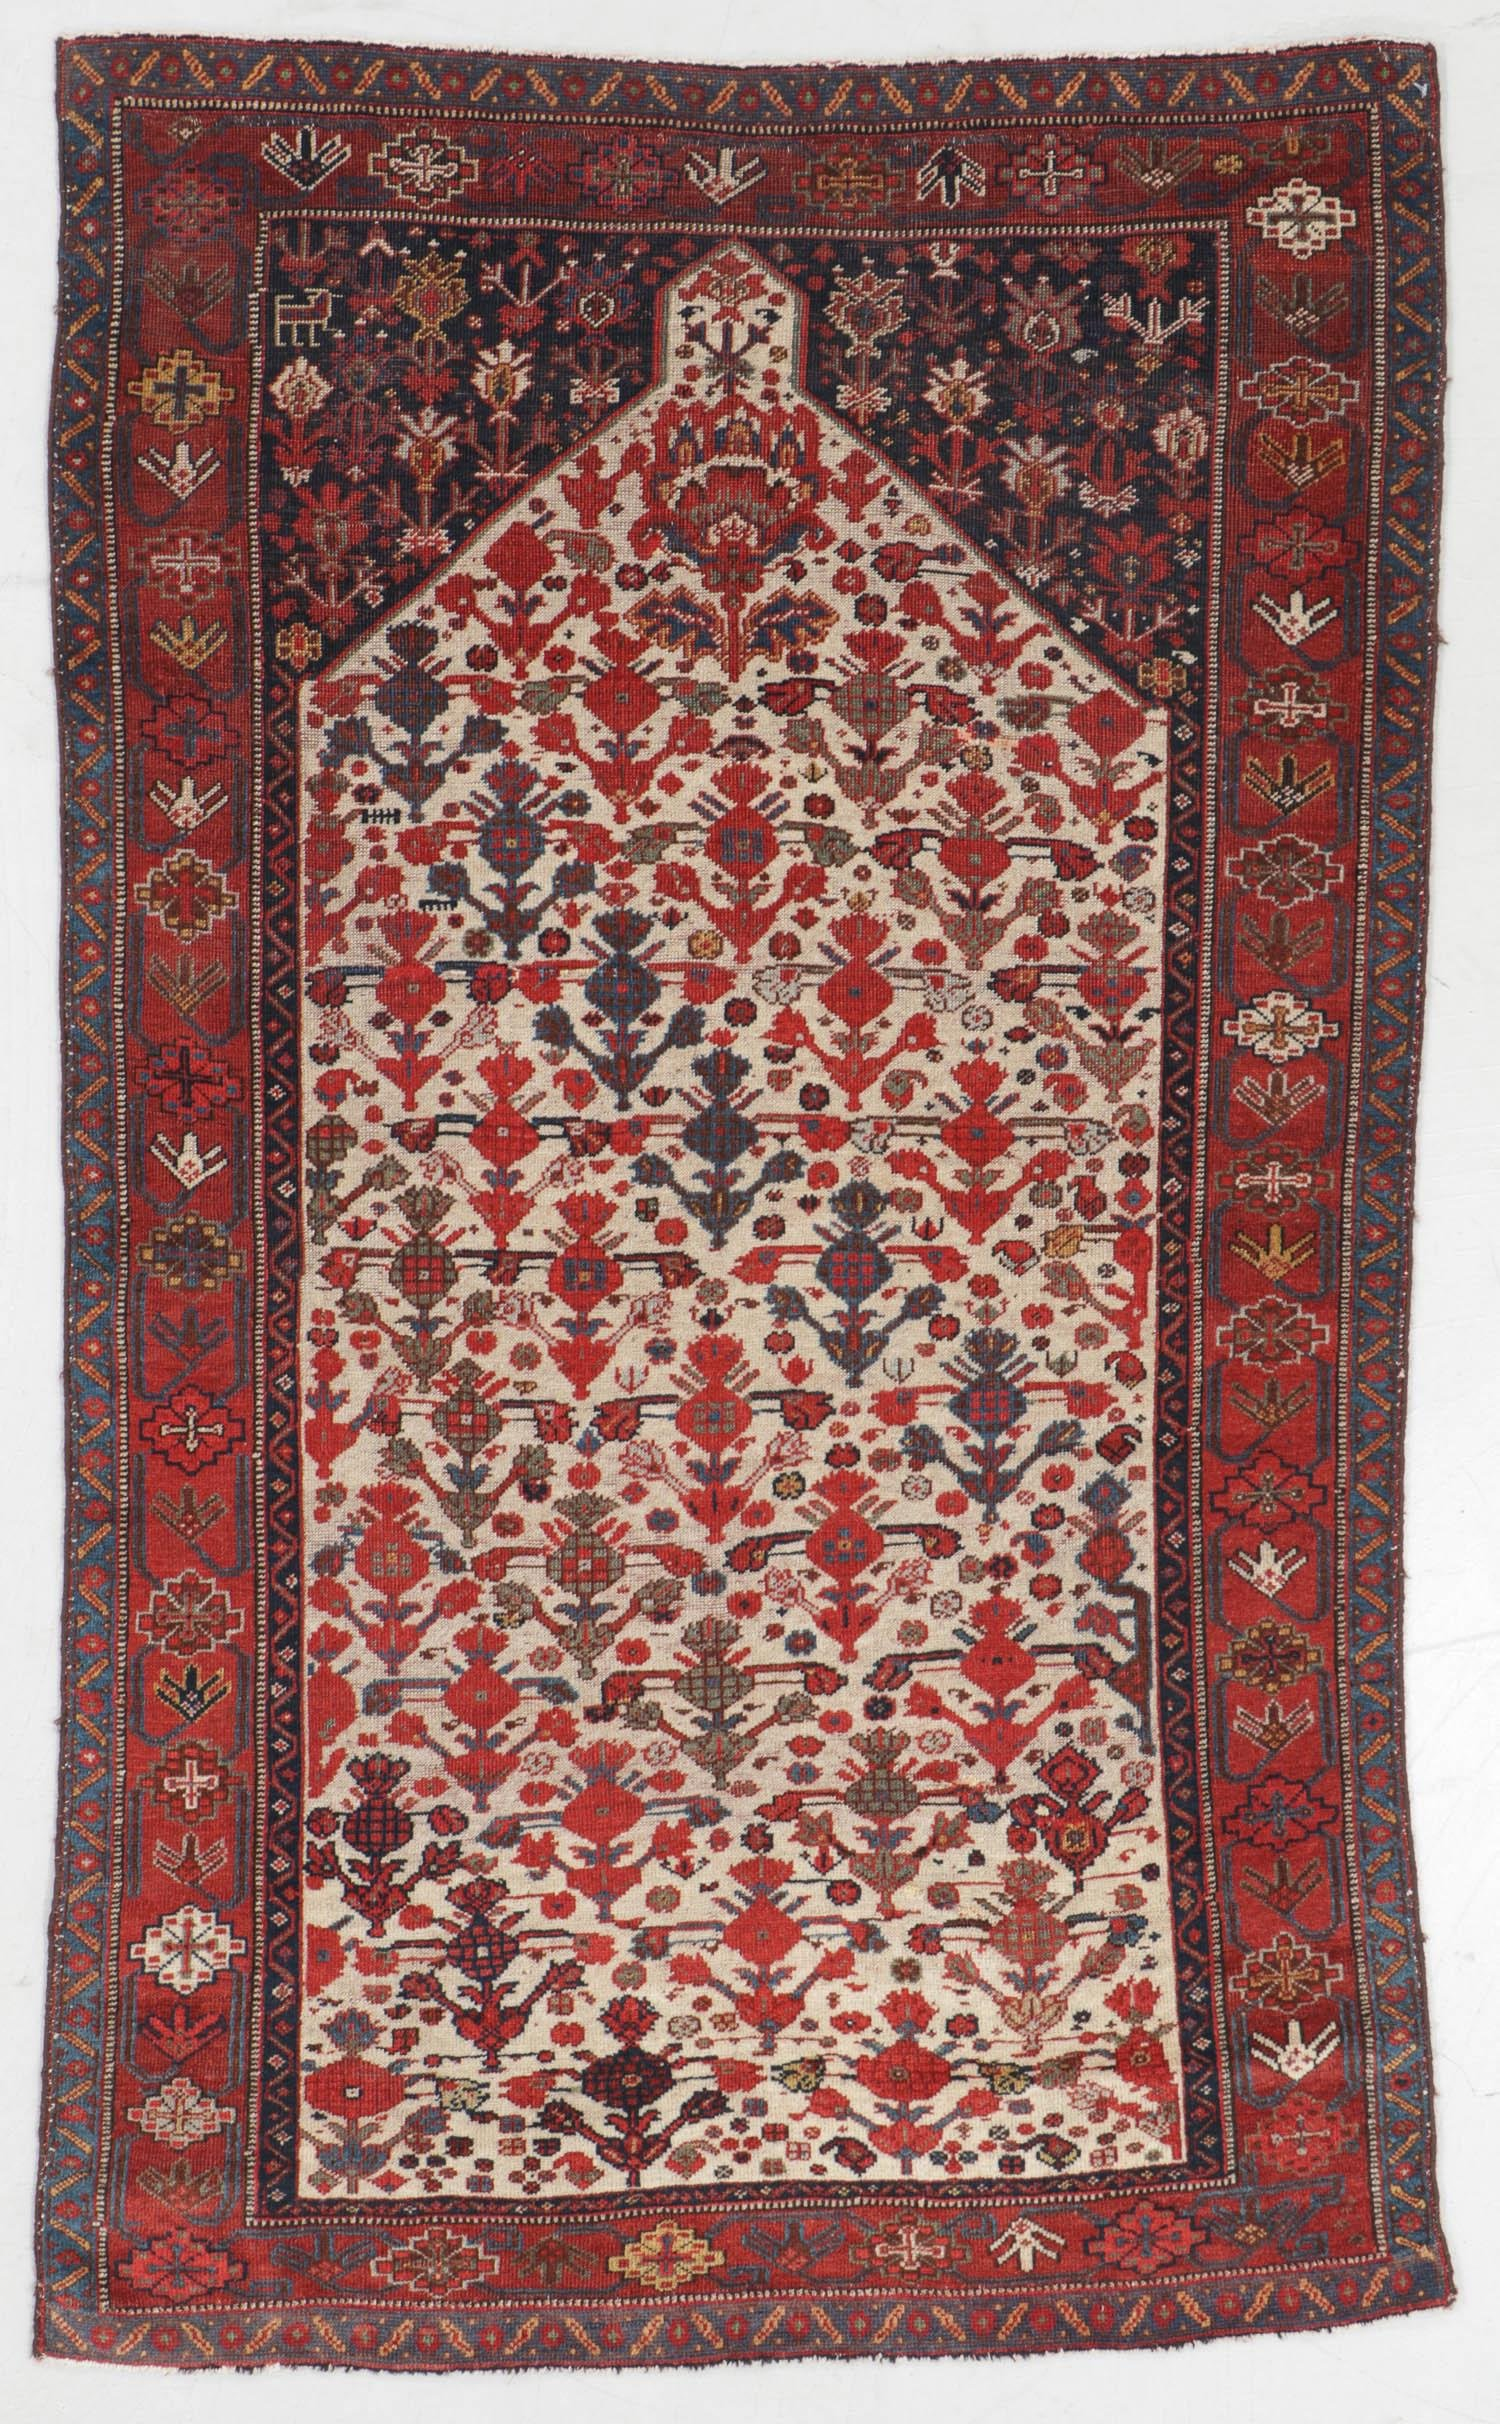 Rare Antique Khamseh Beharlu Prayer Rug, Persia